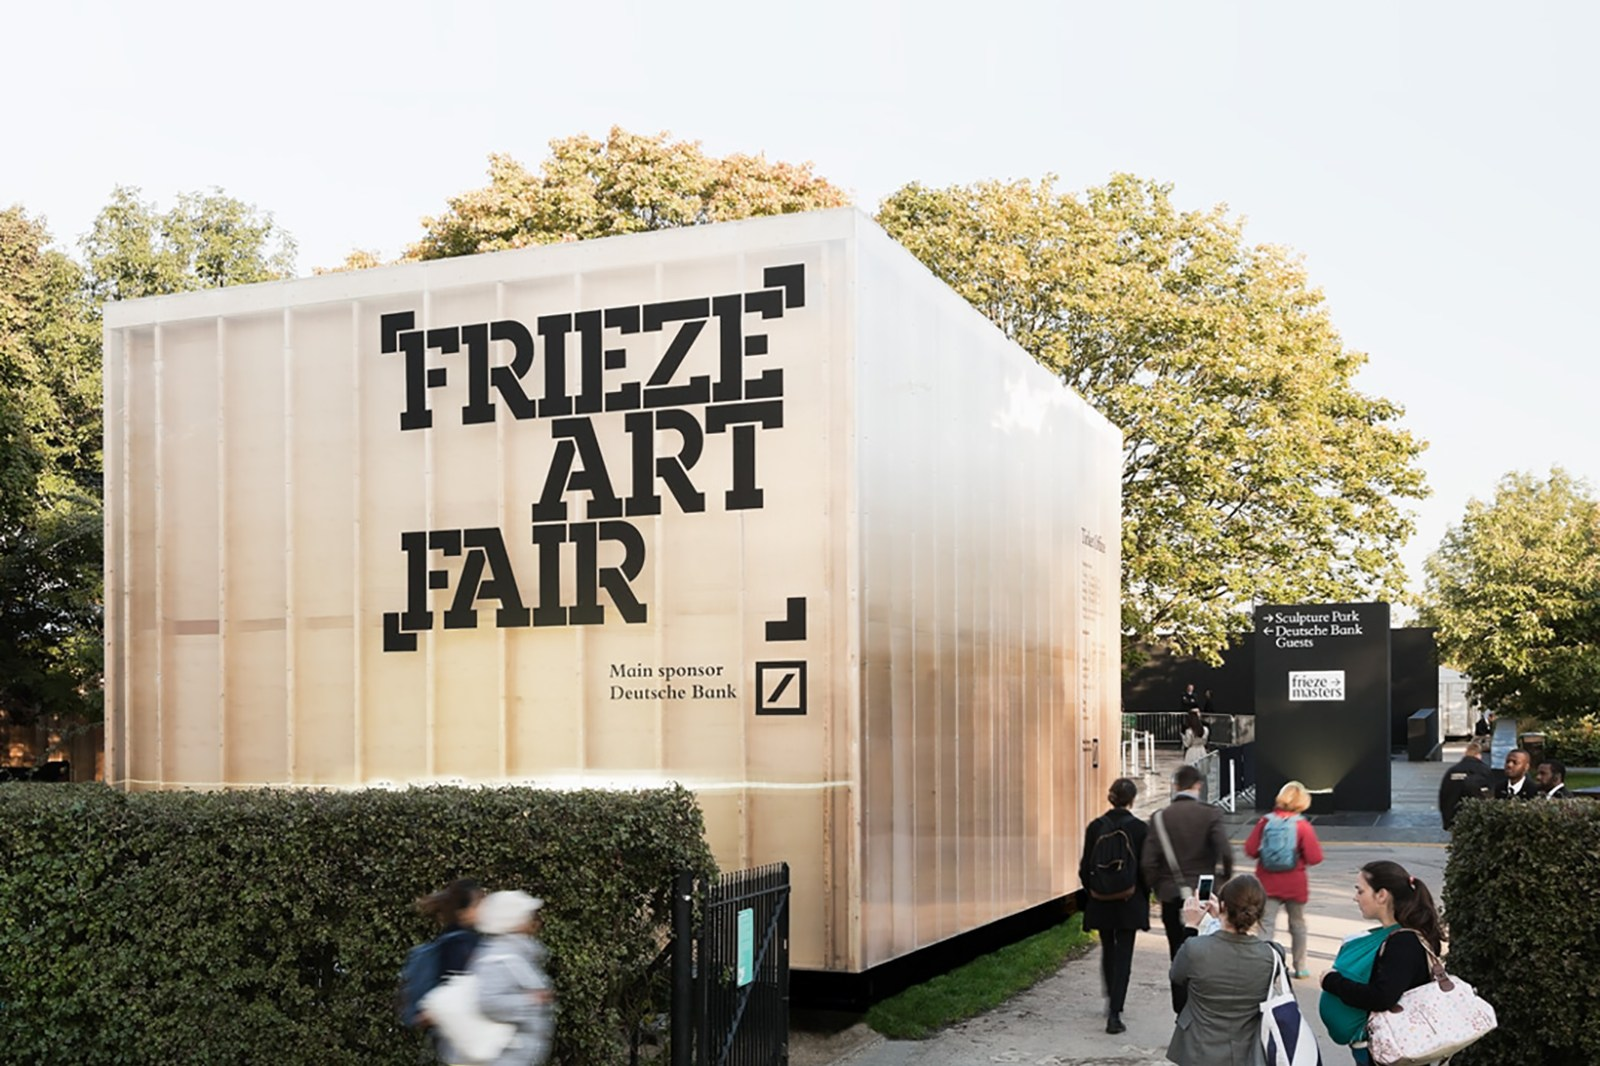 frieze london 2016 art fair guide hypebeast